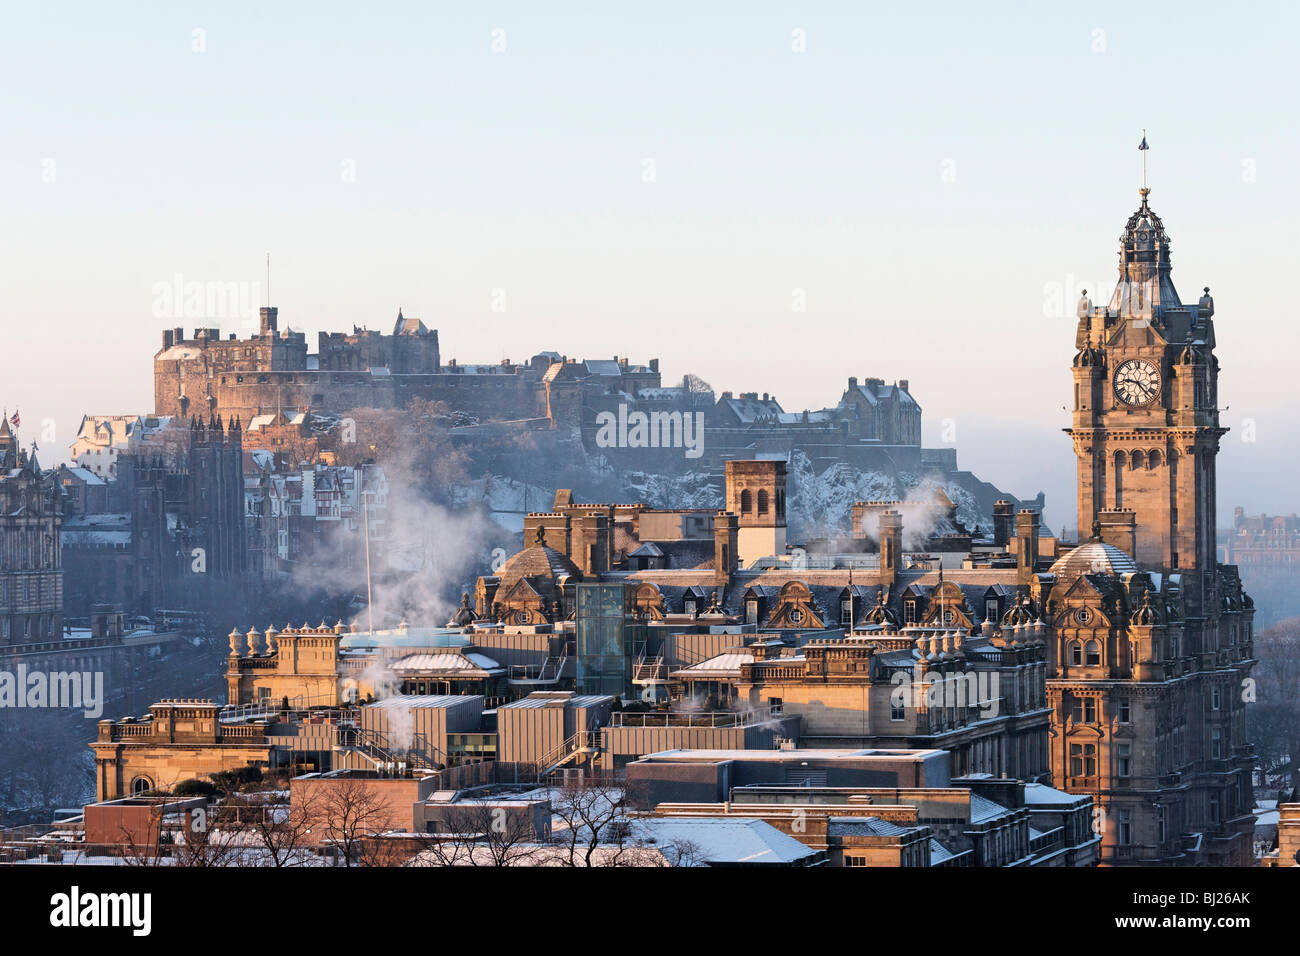 Edinburgh Castle and the clocktower of the Balmoral Hotel, Edinburgh, Scotland, UK. - Stock Image